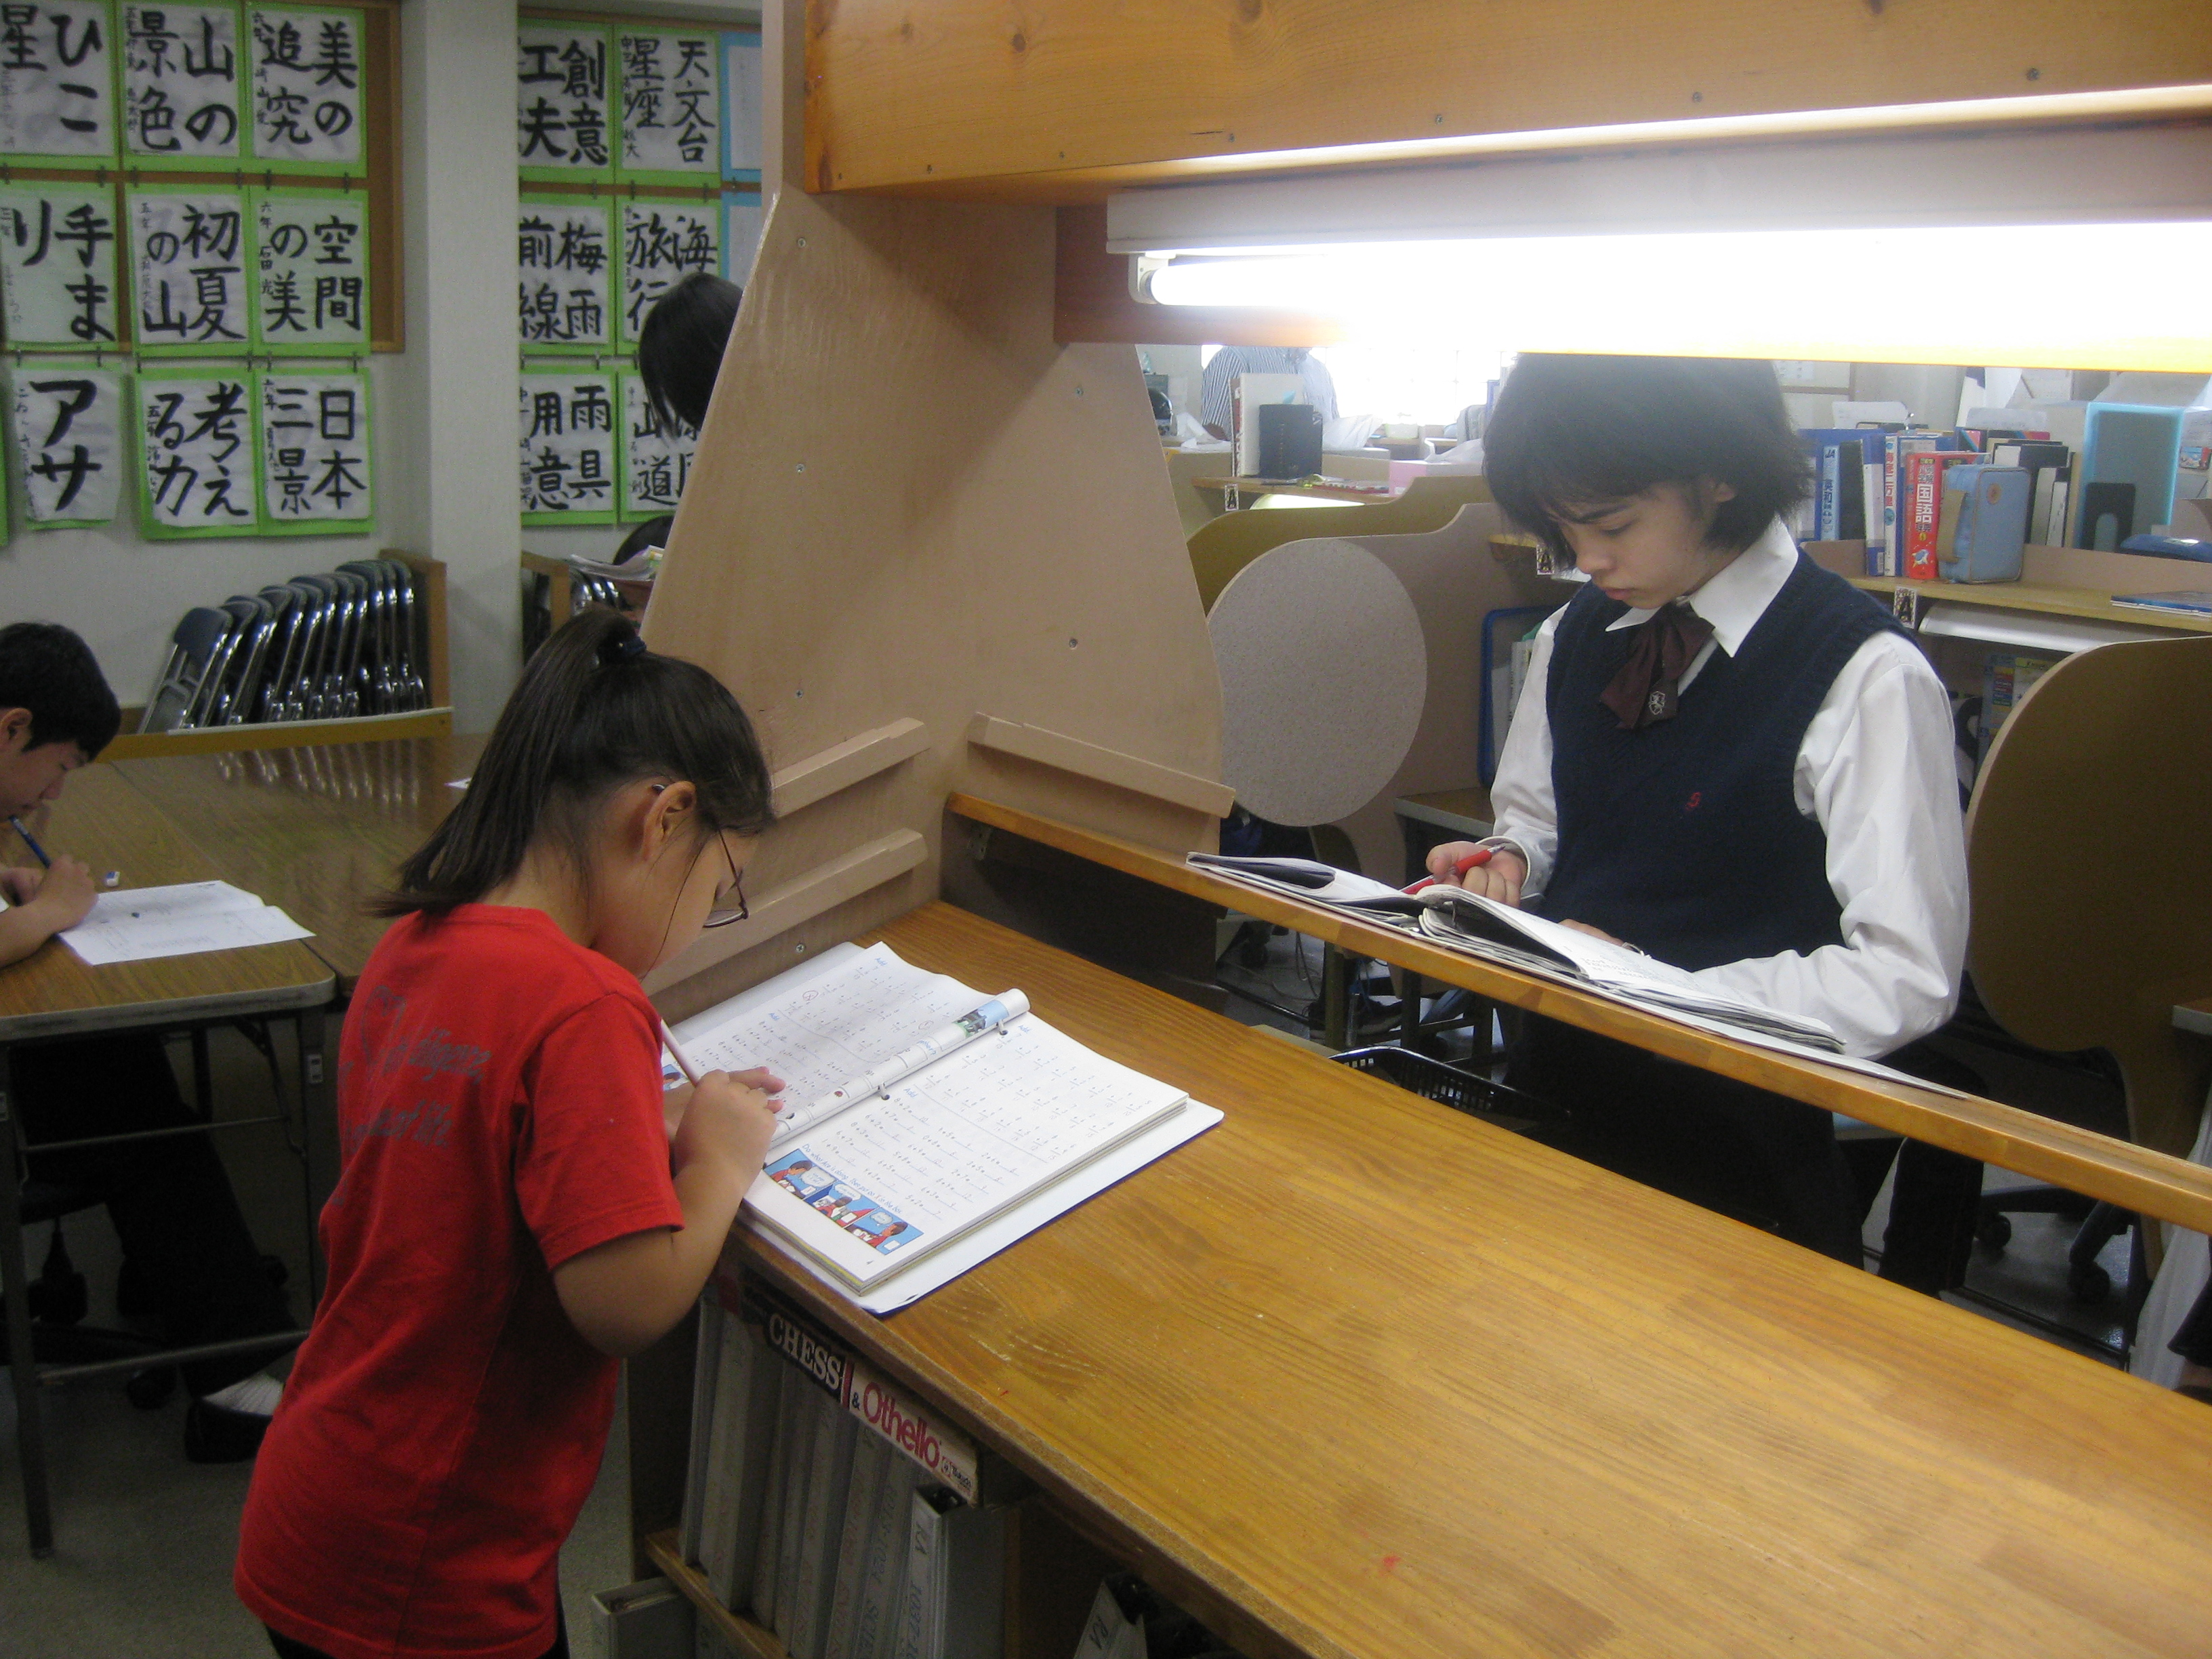 Students checking their work